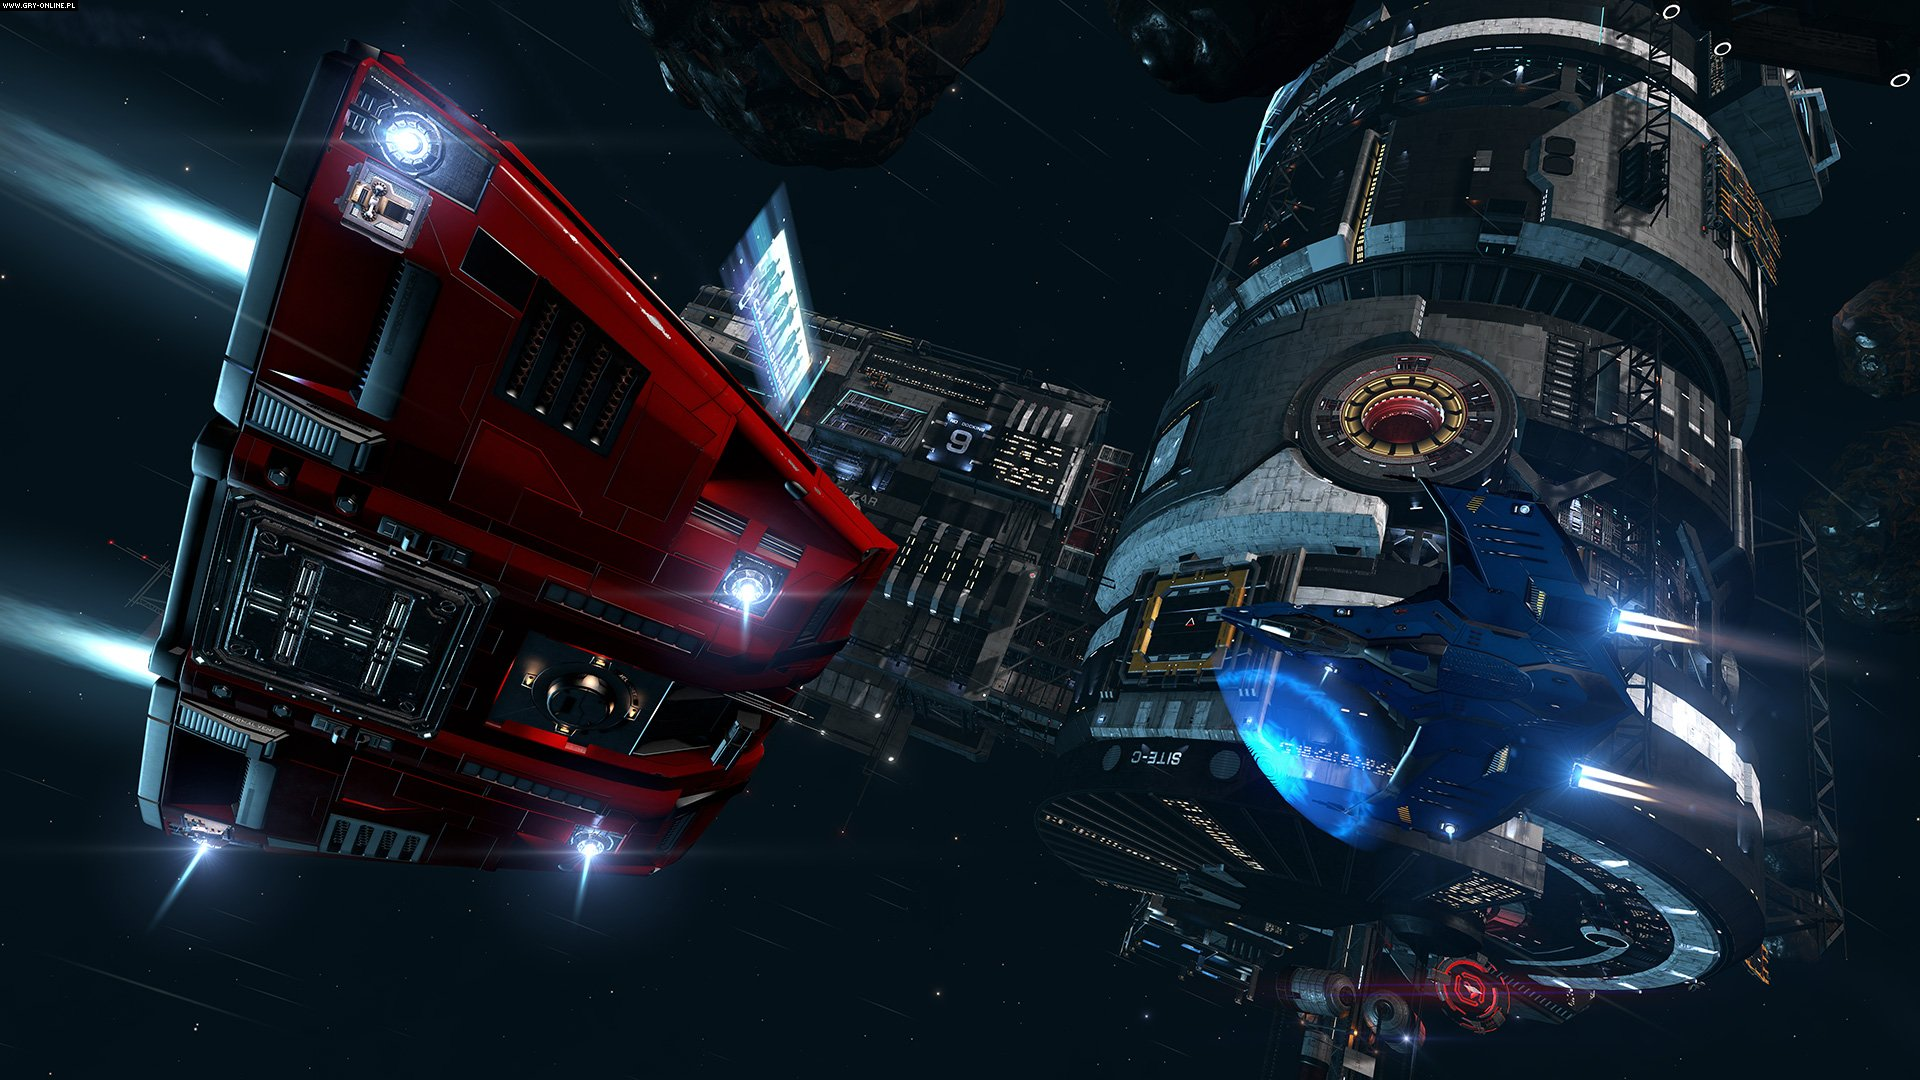 Elite: Dangerous - Arena PC Games Image 15/15, Frontier Developments/Chris Sawyer, Frontier Developments